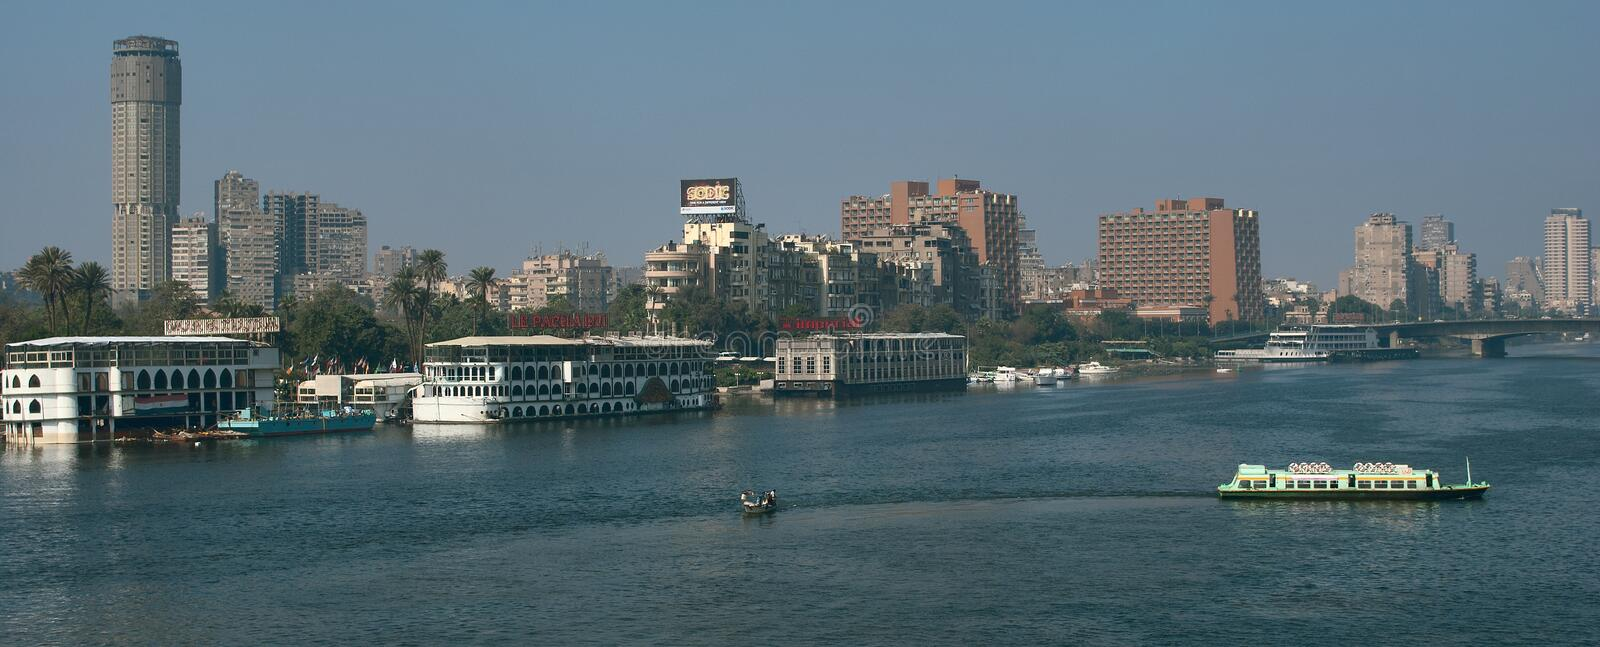 Download The Nile Veiw In Cairo, 6 October Bridge Editorial Photo - Image: 20287826